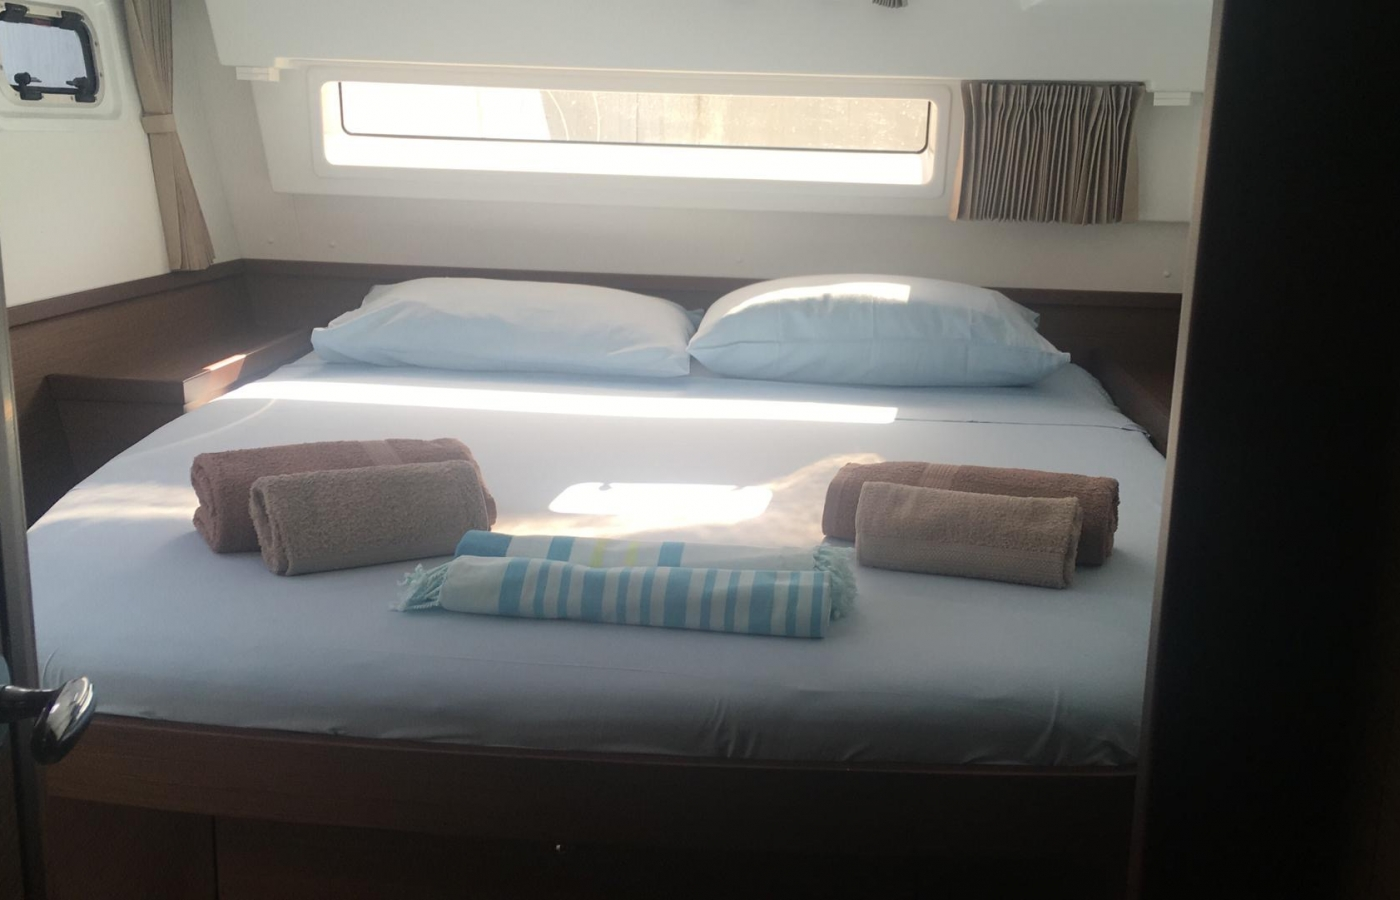 Spacious master cabin with luxury bed linen and towels.